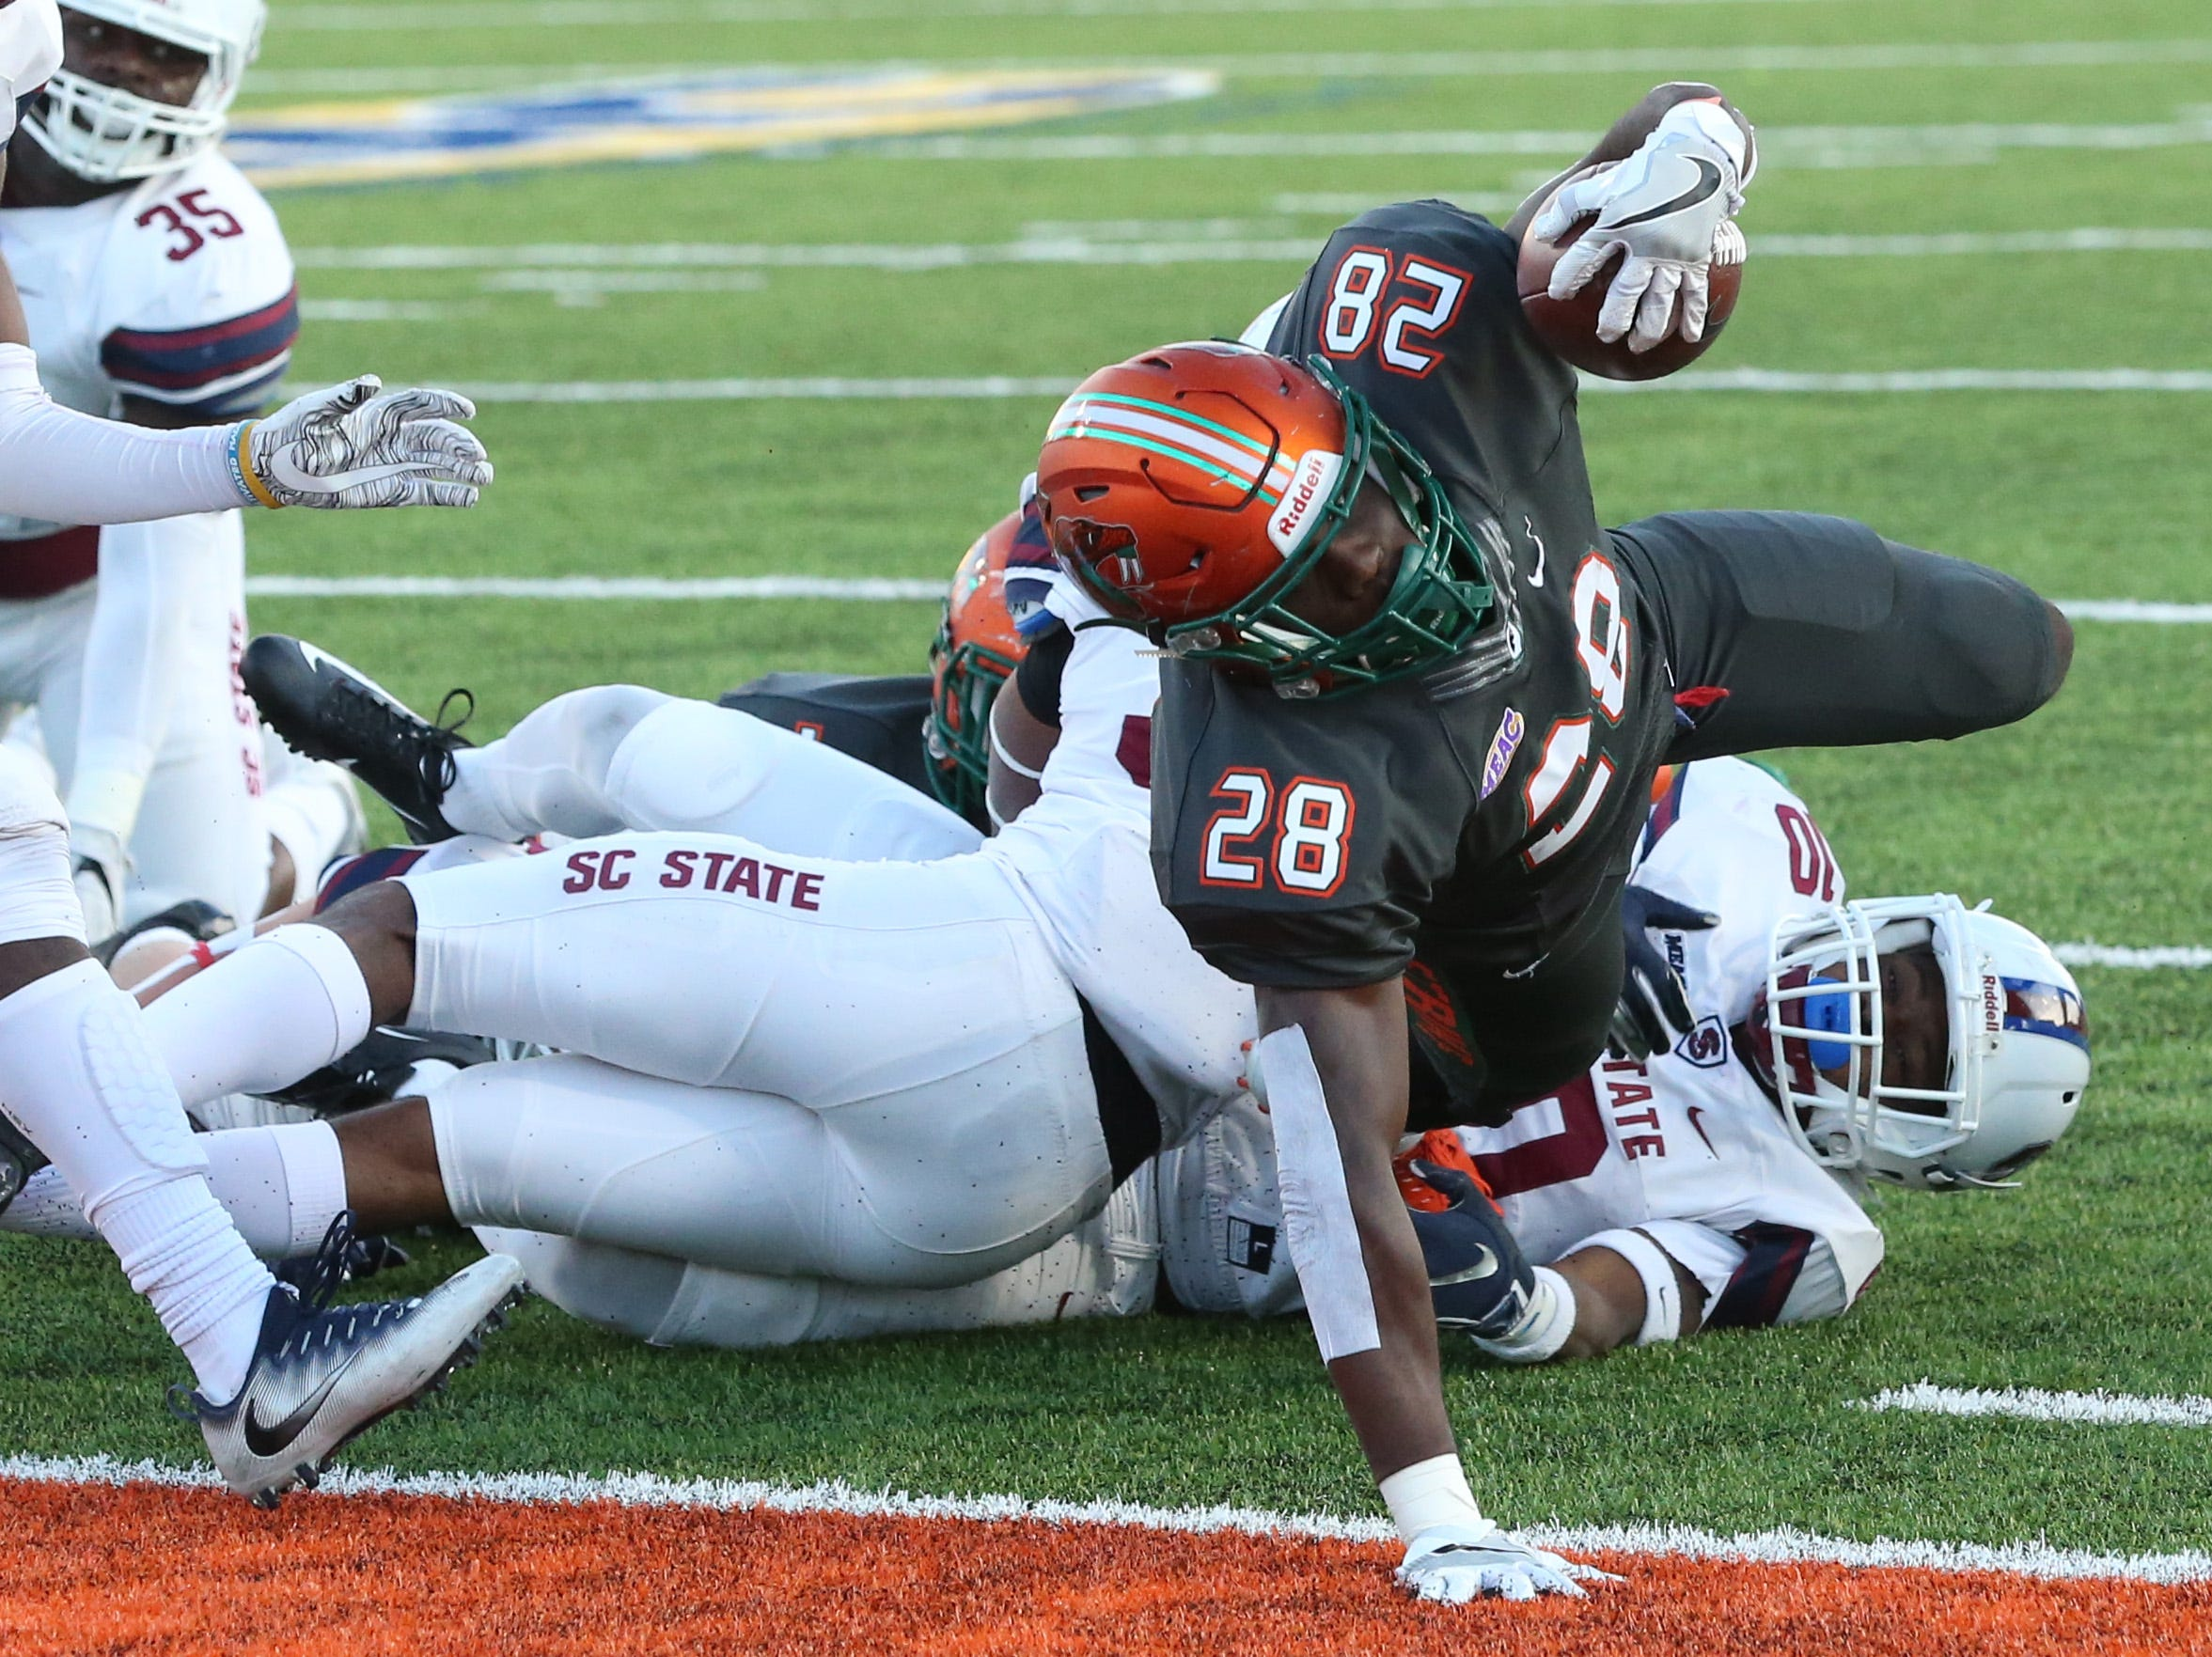 Florida A&M Rattlers wide receiver Ricky Henrilus (28) dives into the end zone to score a touchdown as the FAMU Rattlers host the South Carolina State Bulldogs in college football, at Bragg Memorial stadium, Saturday, Nov. 10, 2018. The Rattlers lost to the Bulldogs, 21-44.